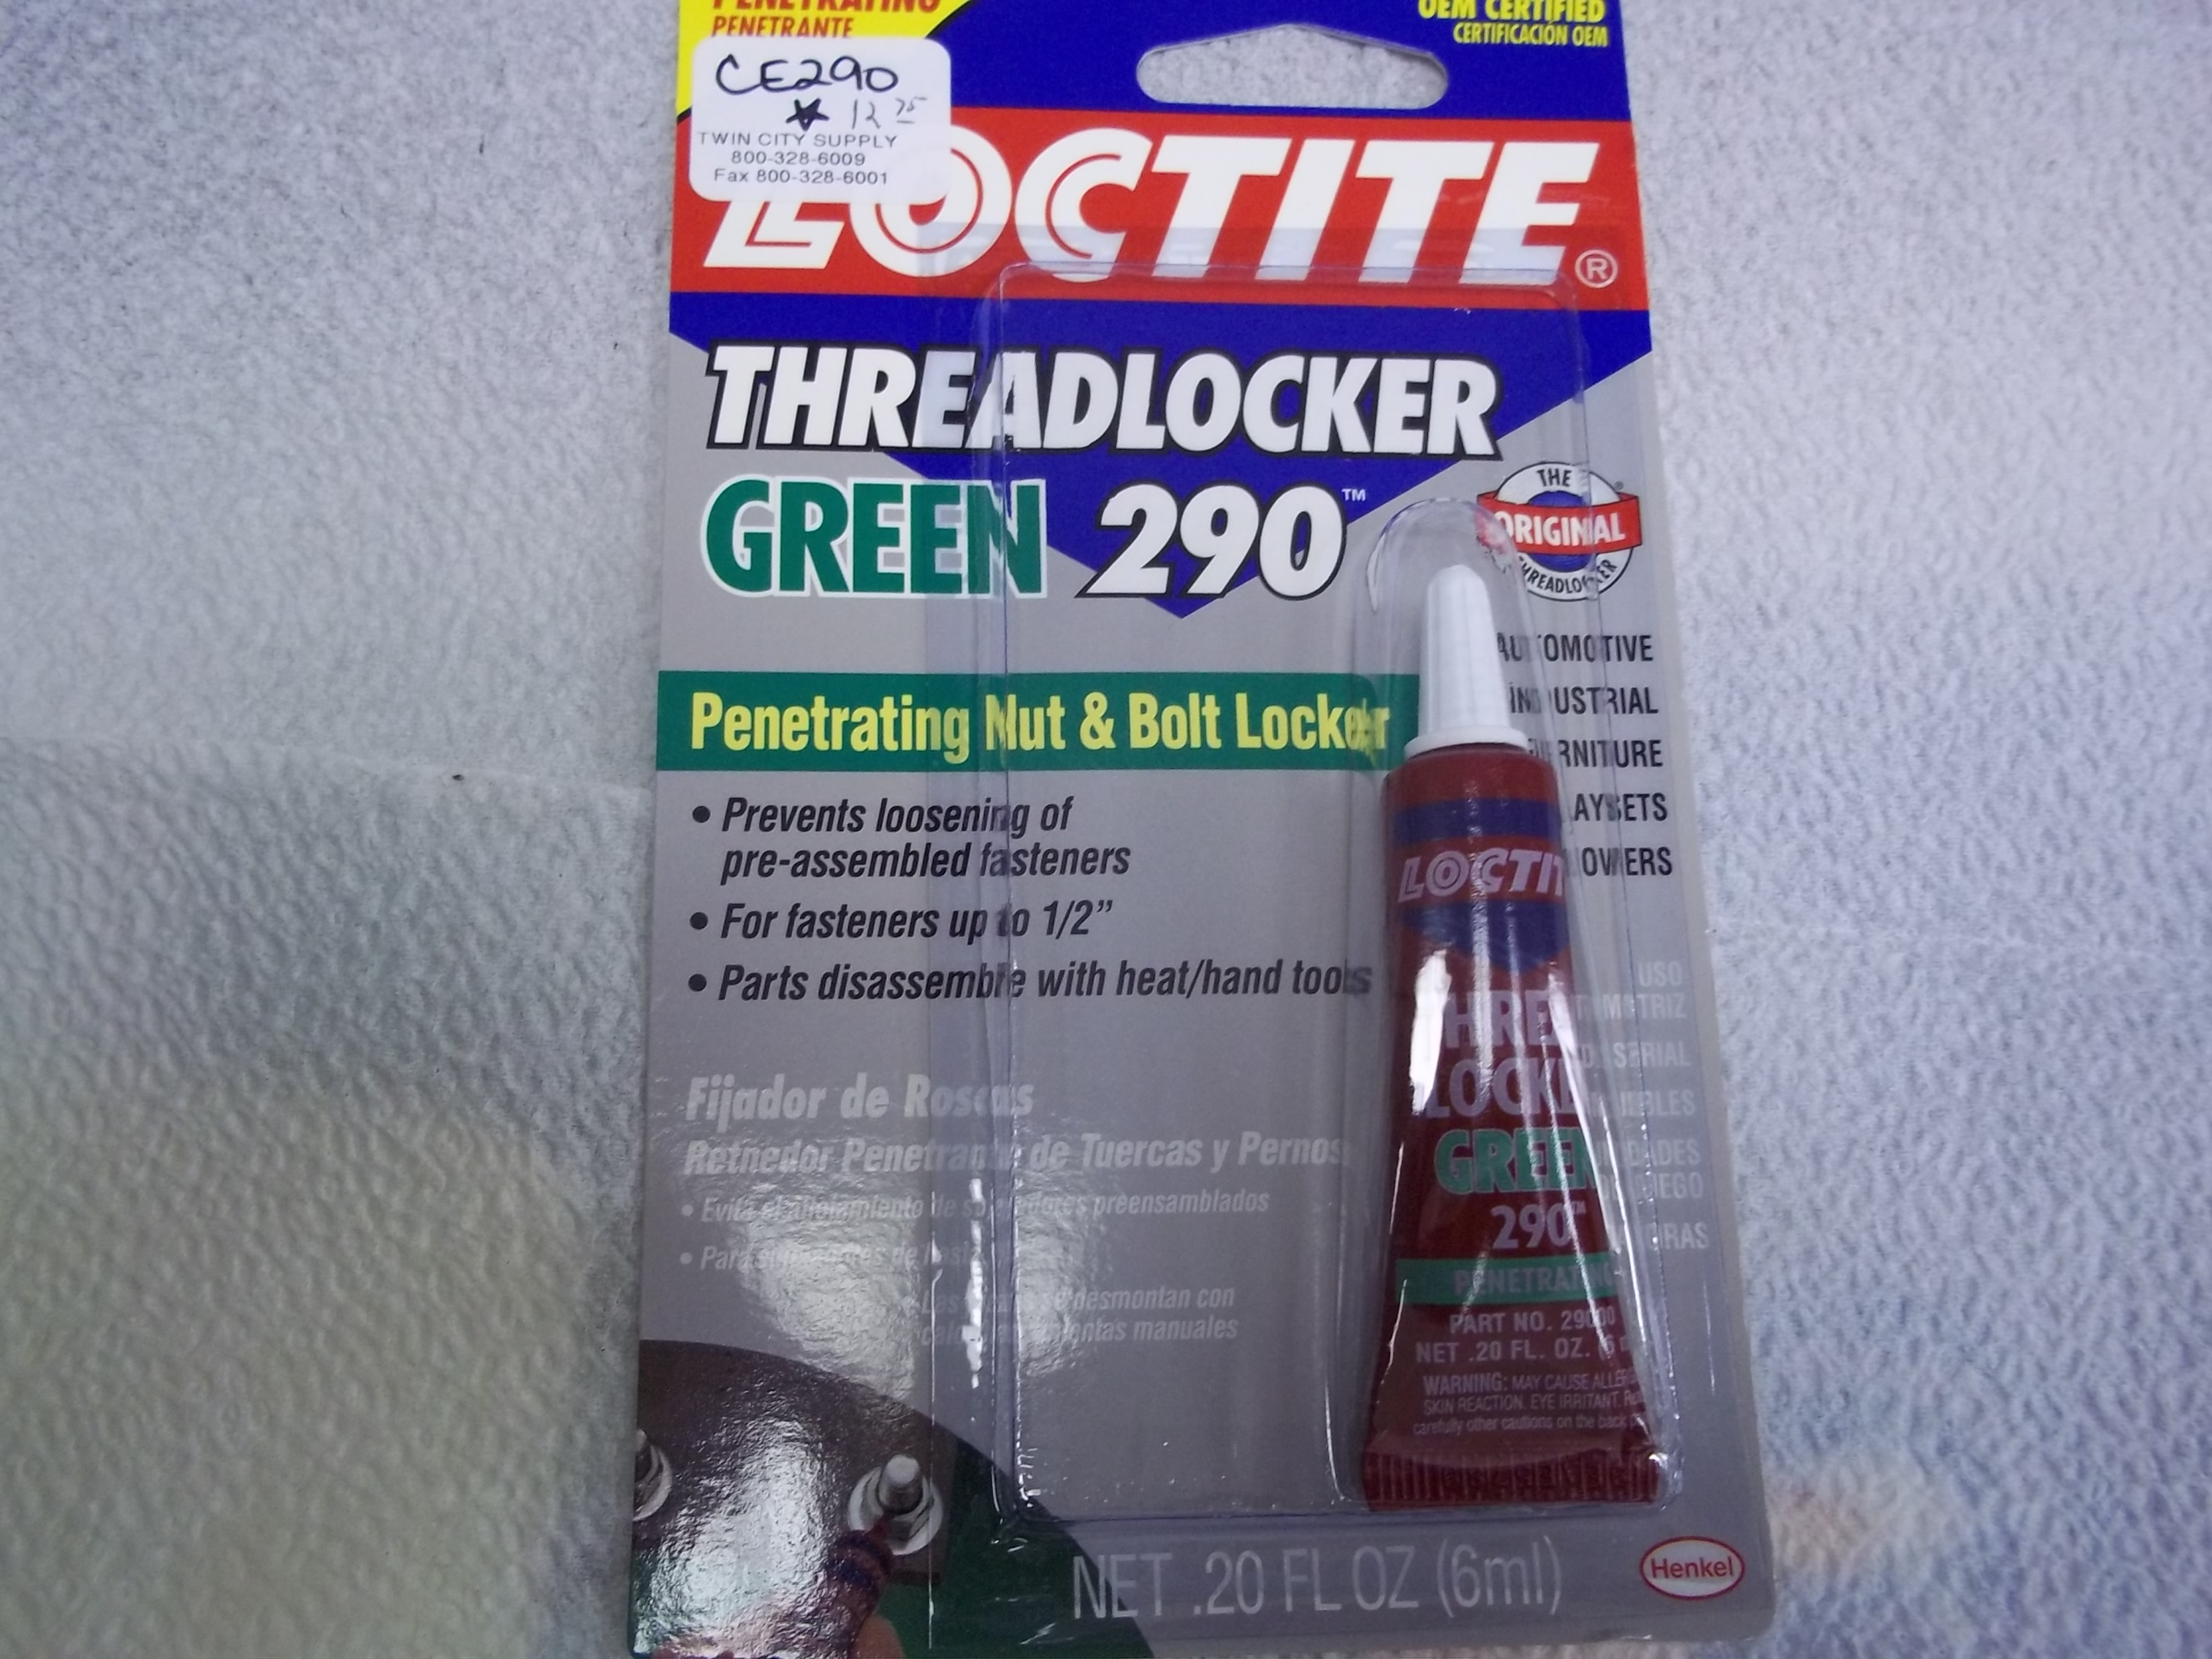 CE290 Loctite threadLocker Green 290